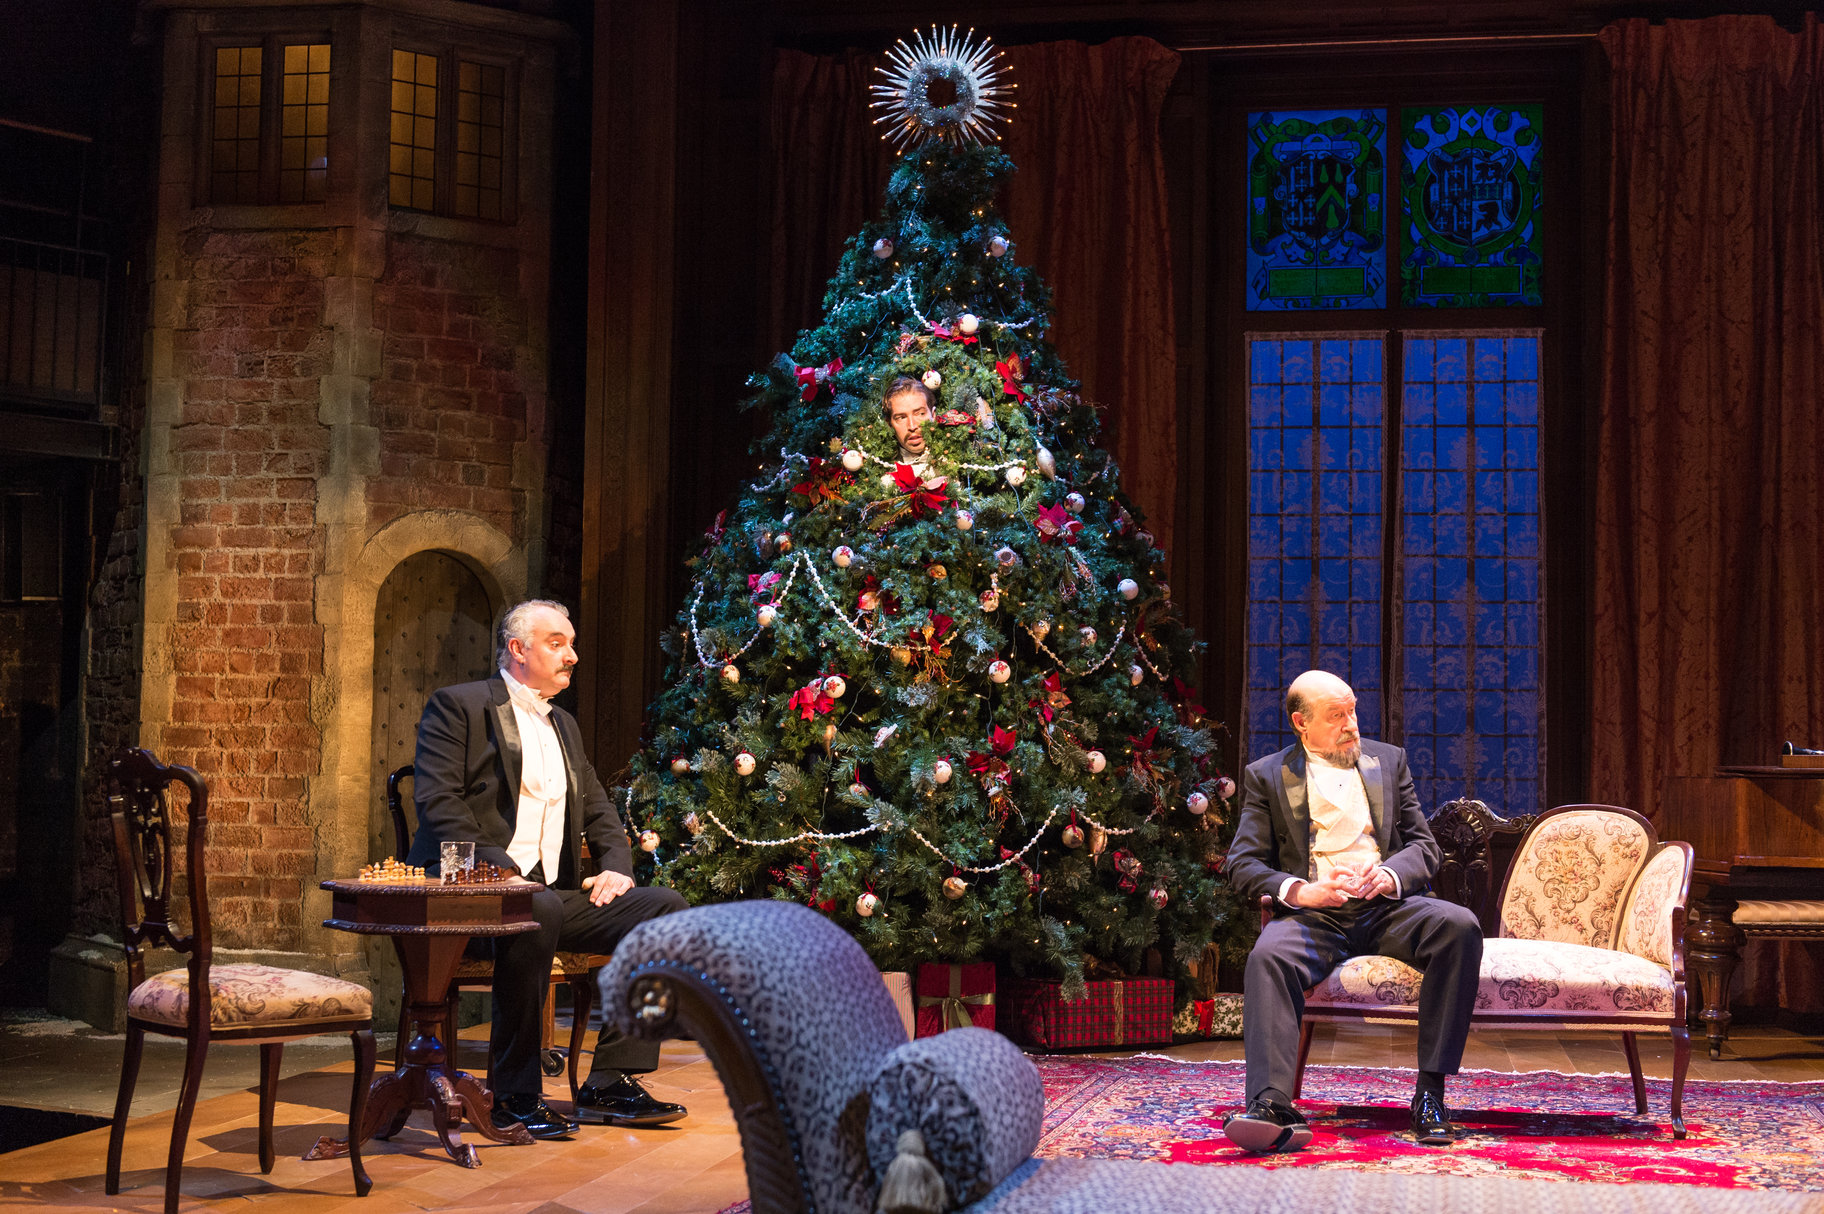 Two men in tuxedos sit next to a Christmas tree, which a man peers out from.